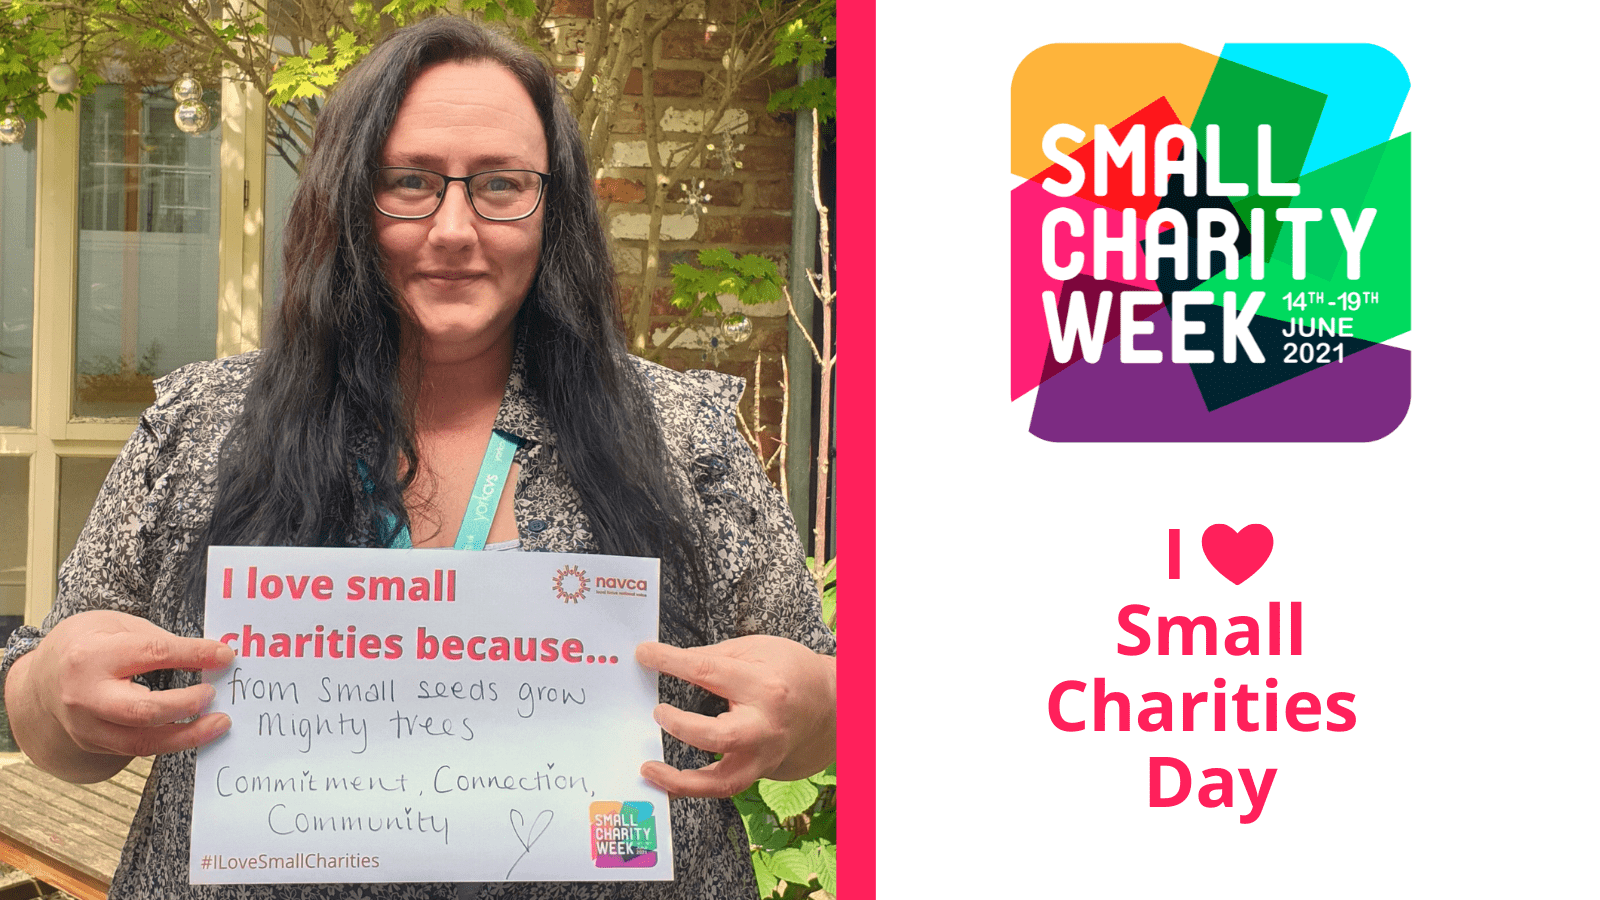 White female with long brown hair and glasses holding up an a4 piece of paper that reads: I love small charities because... From small seeds grow mighty trees! Commitment, connection, community! Small Charity Week logo 14-21 June. I heart small charities day.